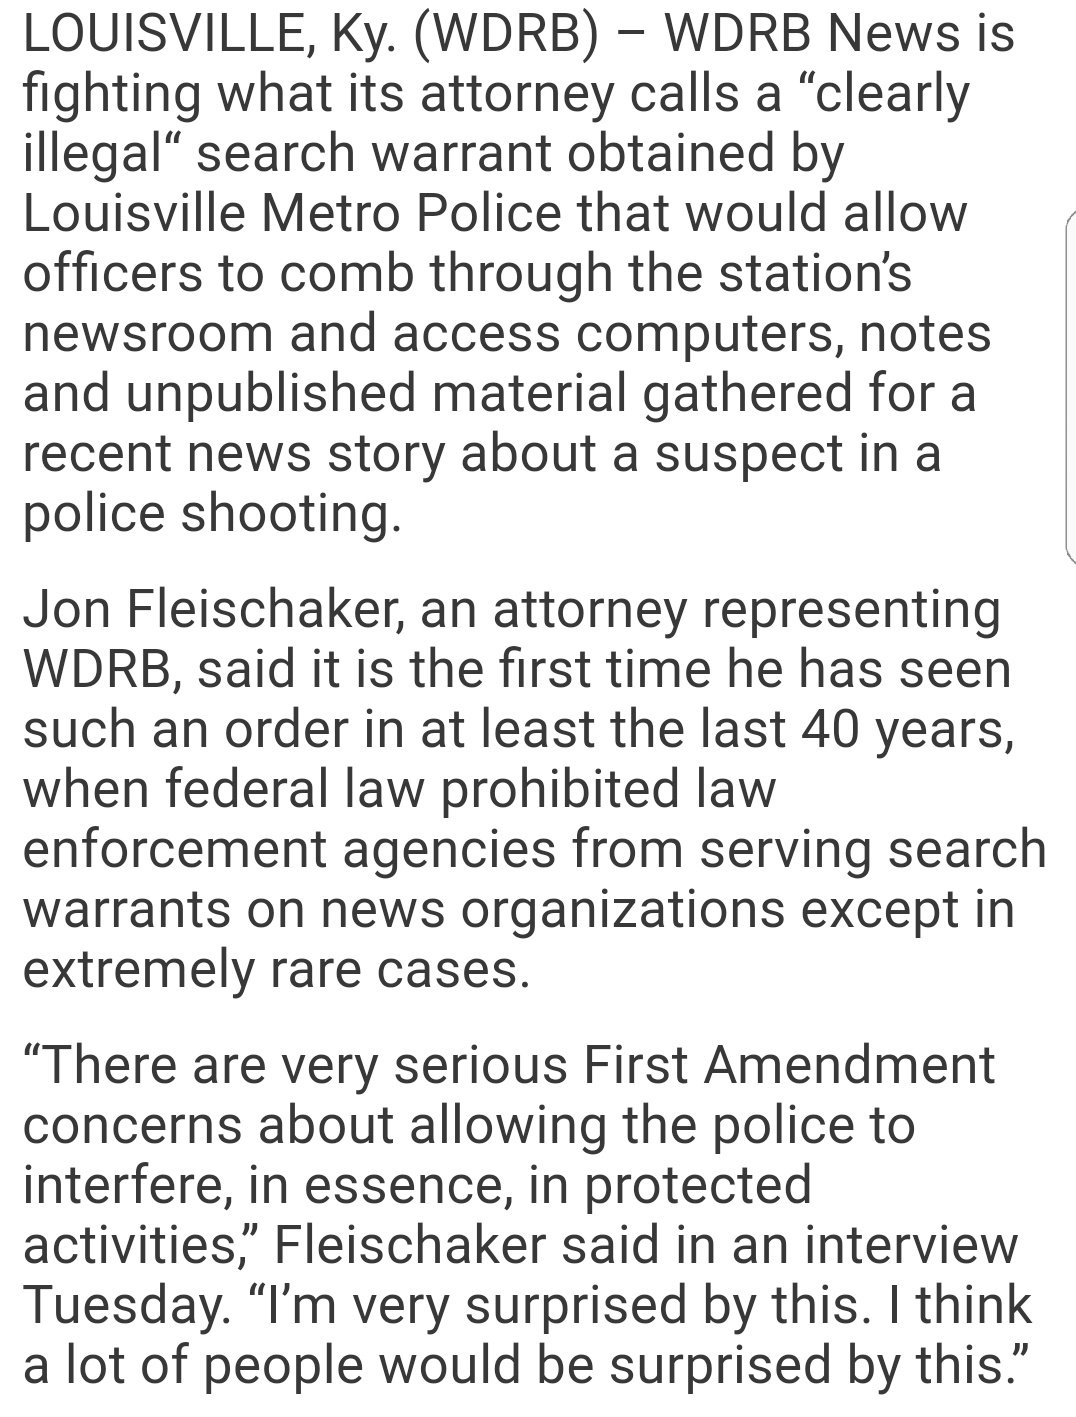 WDRB News fights 'clearly illegal' search warrant from Louisville Metro